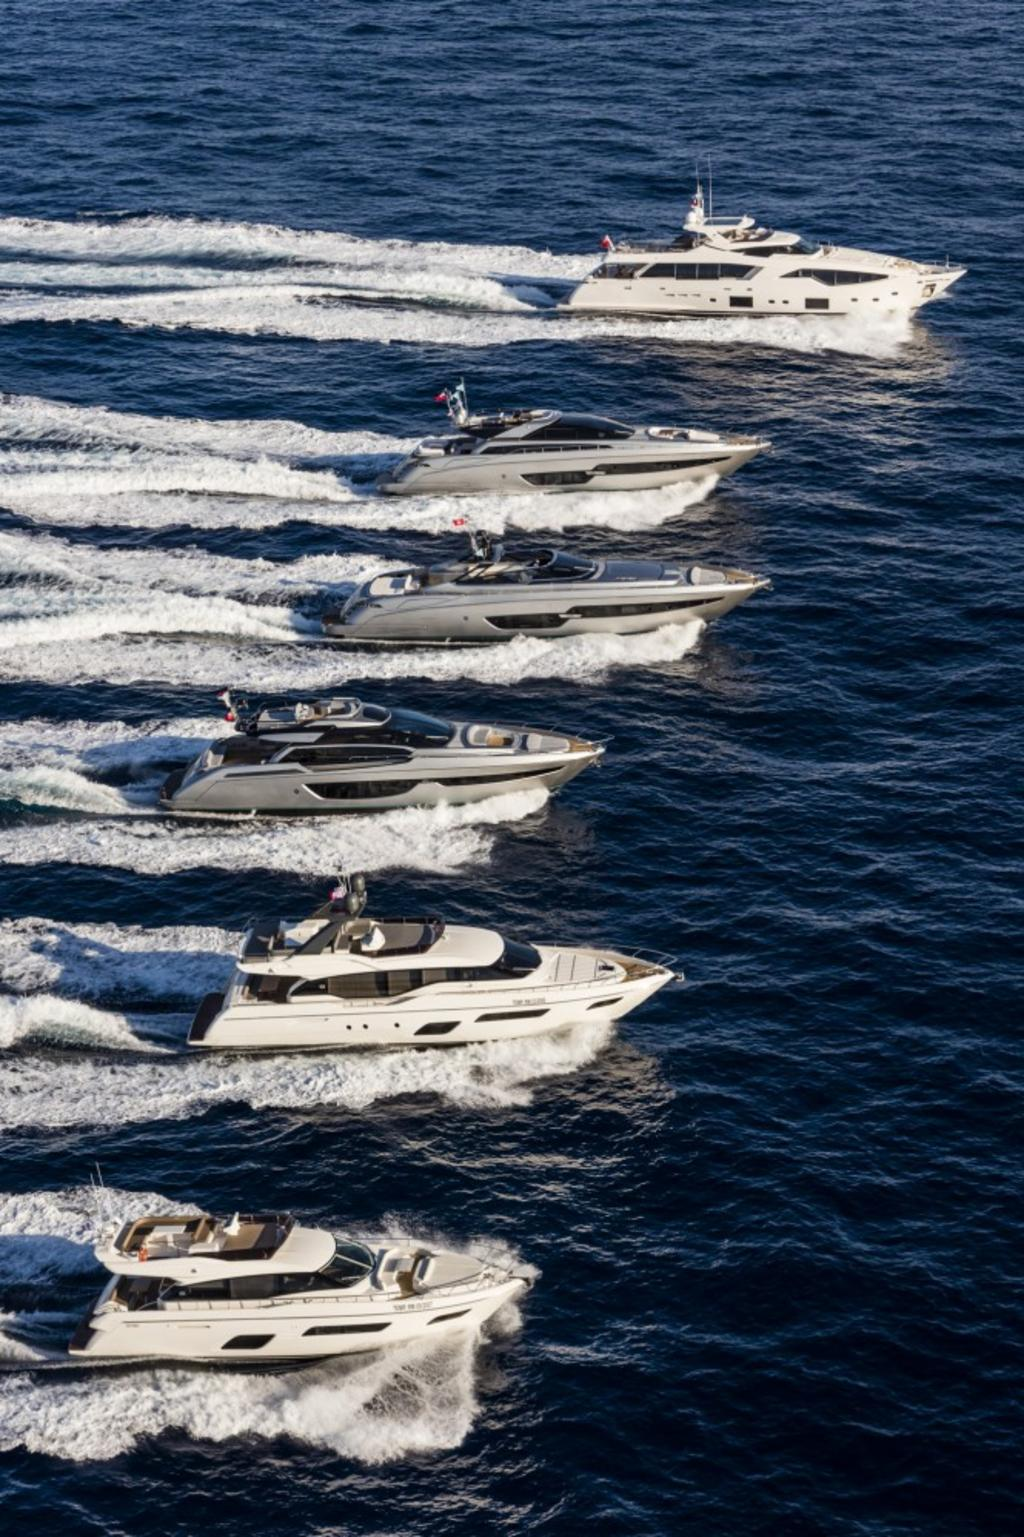 <p>Ferretti Group to develop 27 new models.</p> image